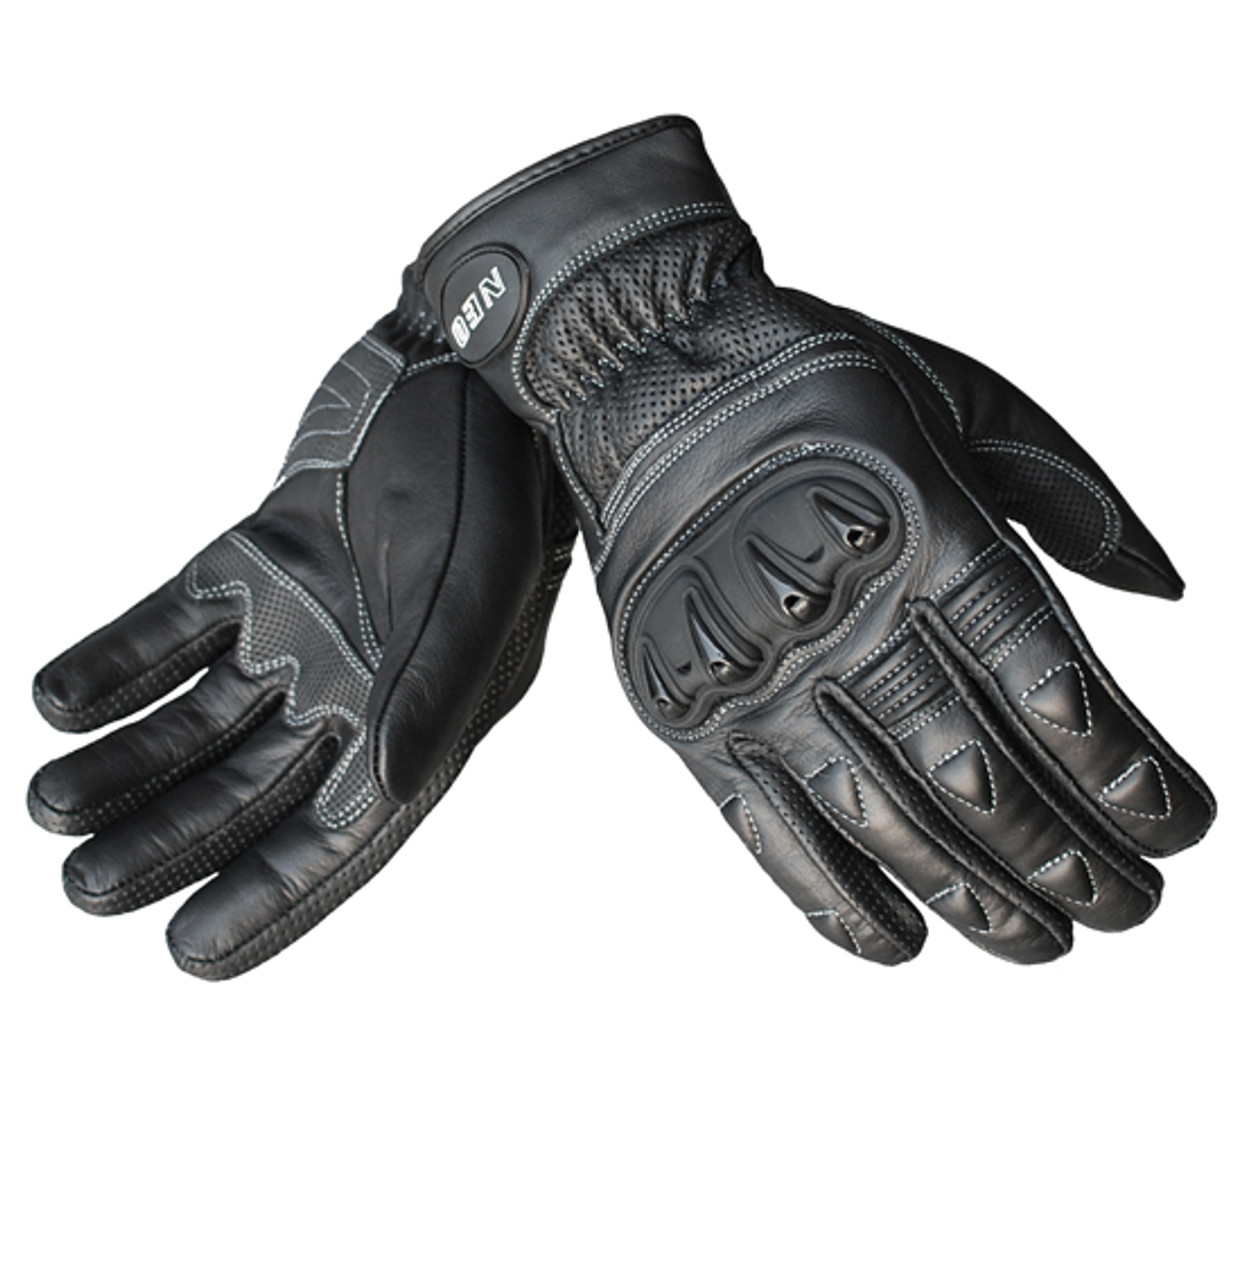 NEO Dart Motorcycle Glove - Leather Sport/Urban, Black